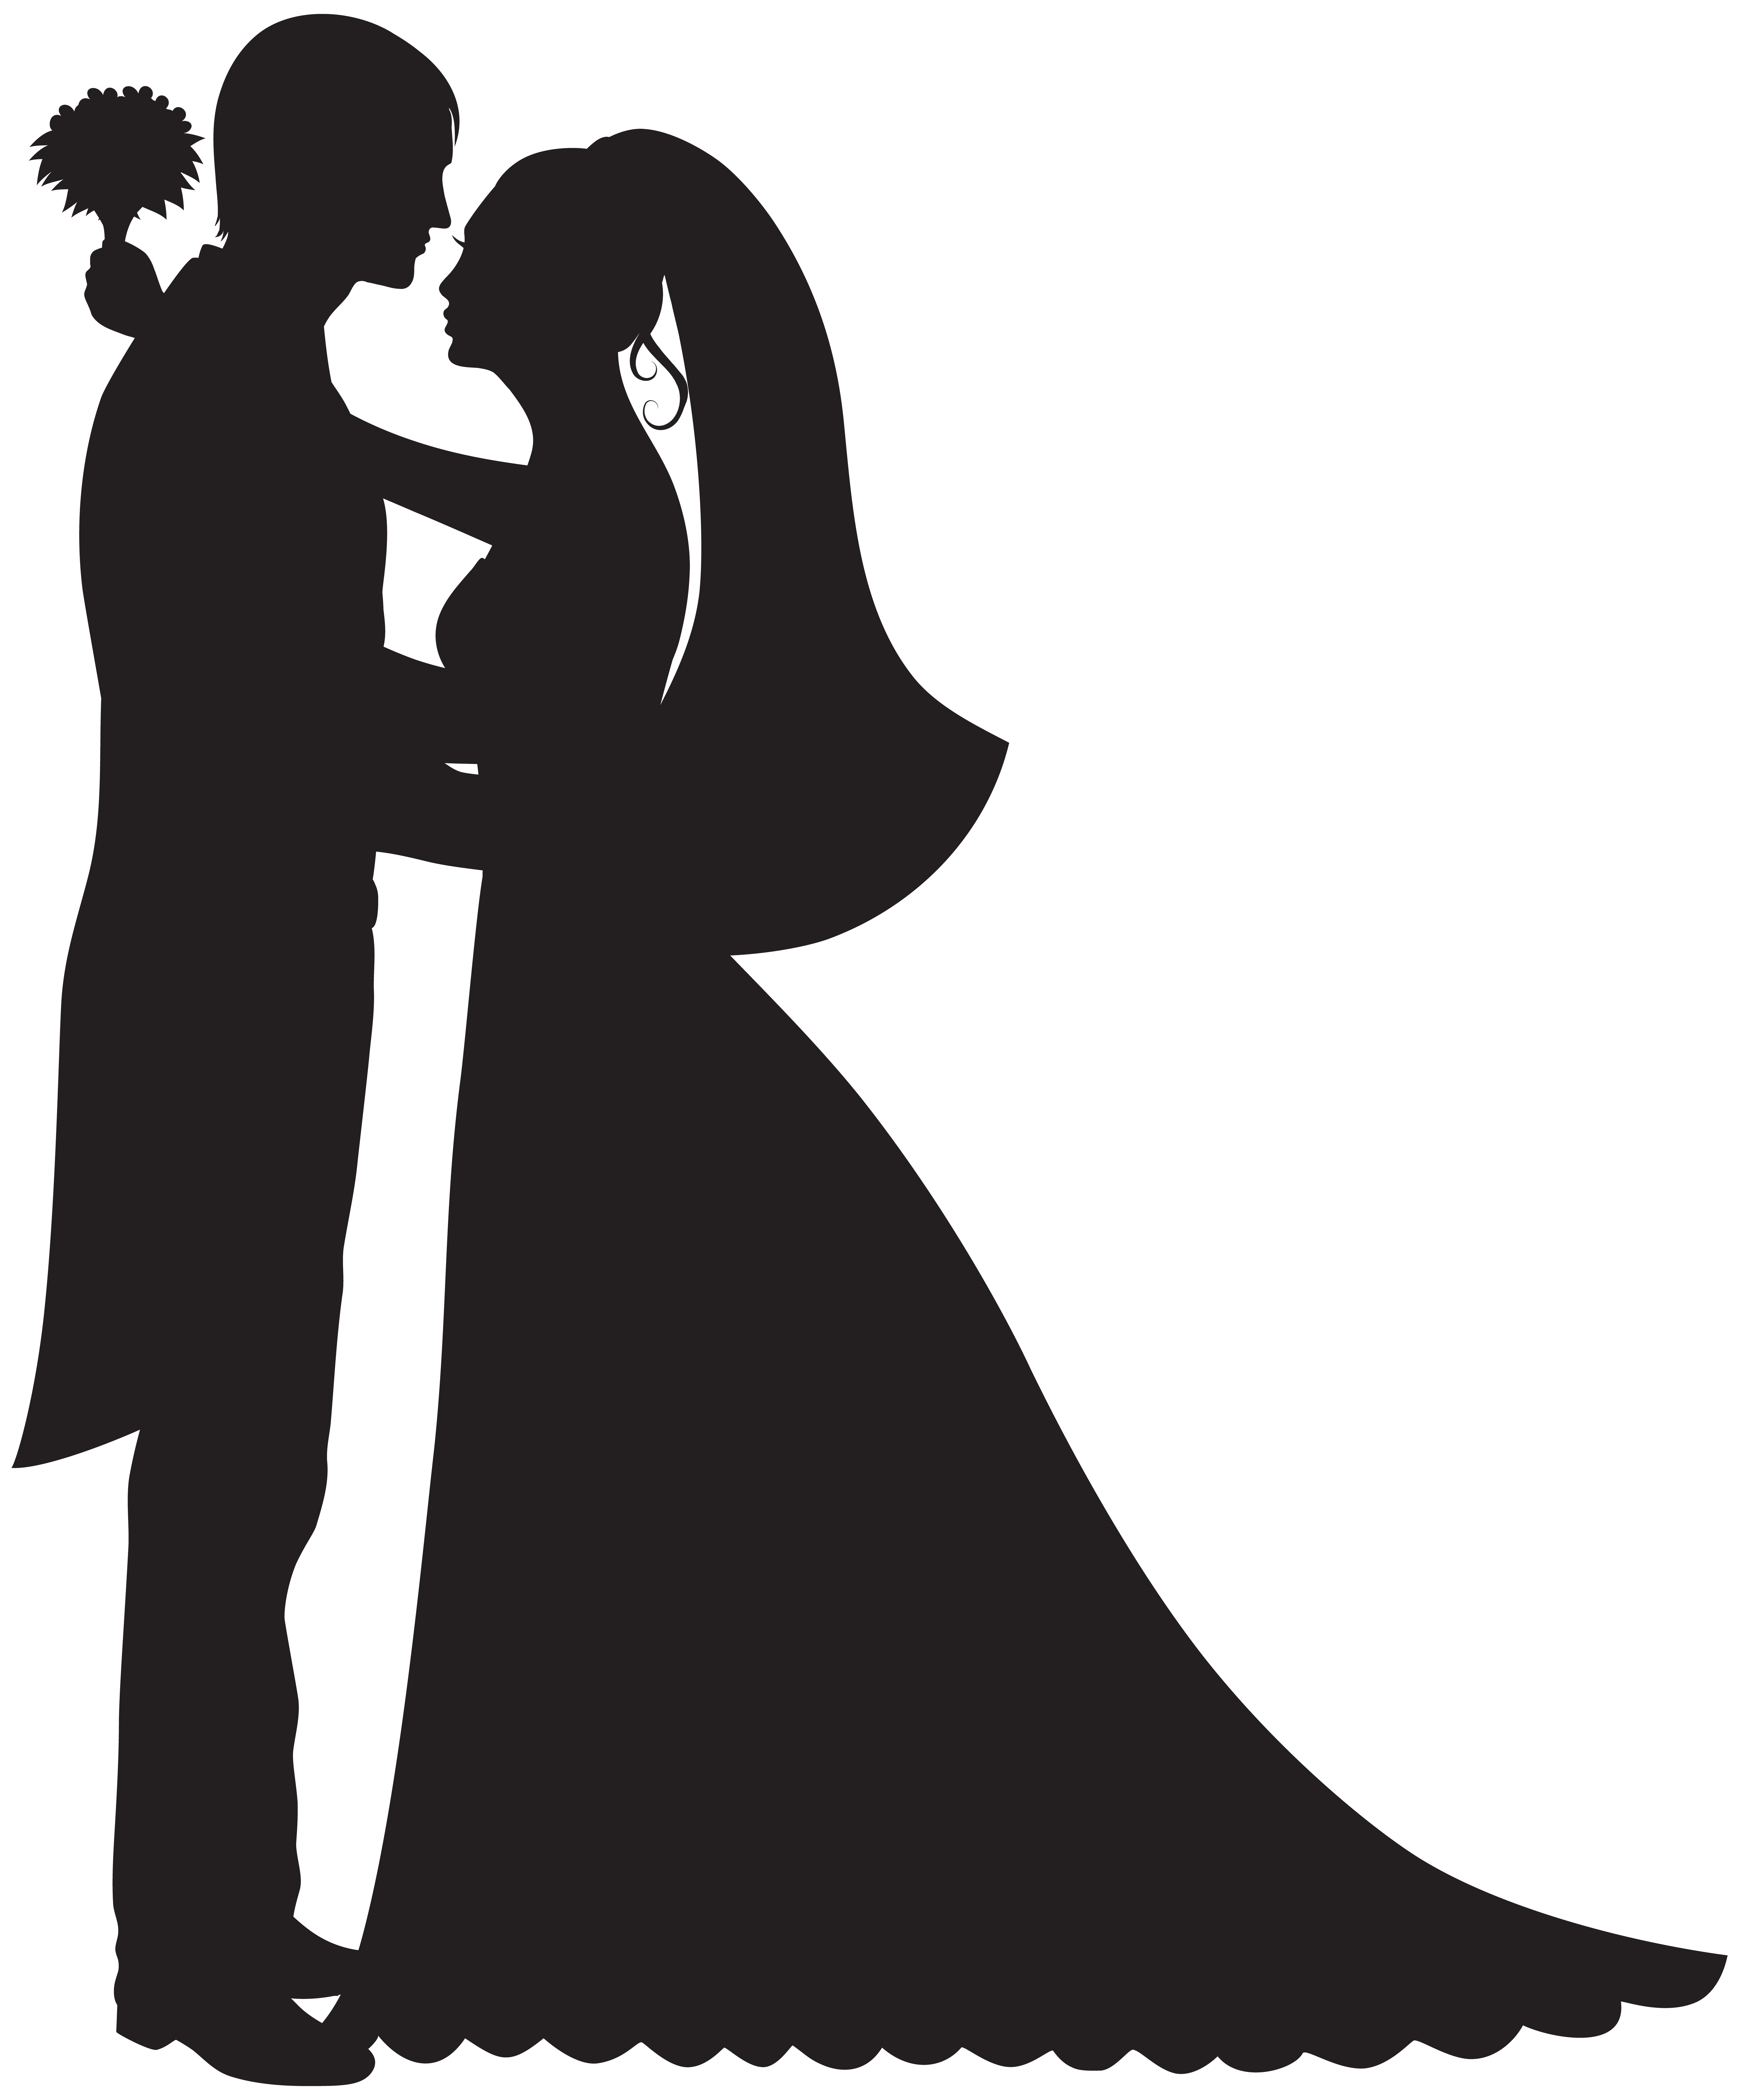 Bride and flower girl clipart svg free stock Wedding Dress Silhouette Clip Art at GetDrawings.com | Free for ... svg free stock